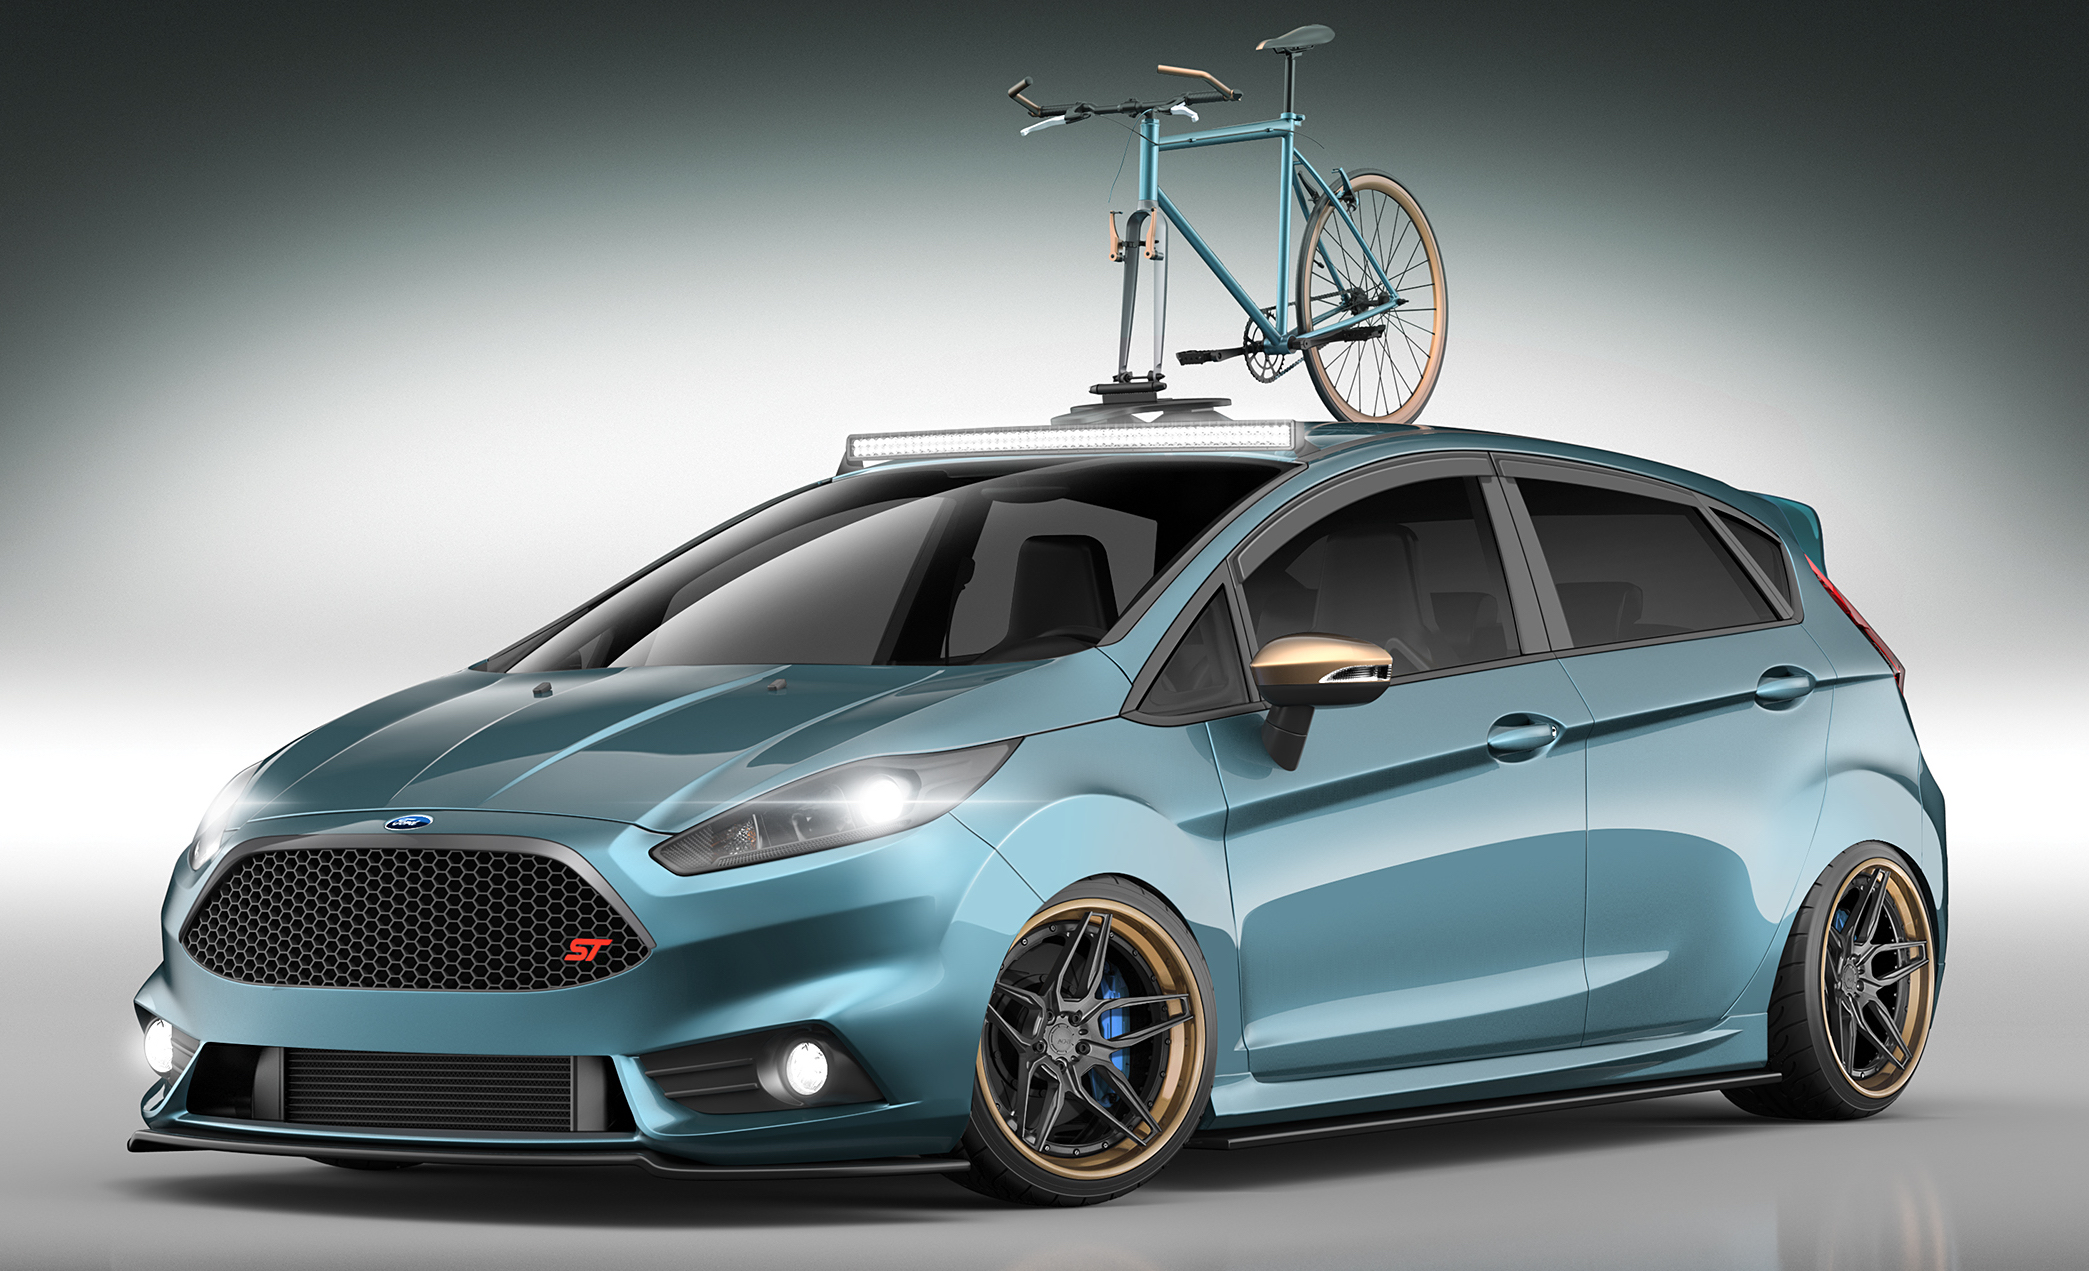 ford focus st and fiesta st custom mods for sema image 400263. Black Bedroom Furniture Sets. Home Design Ideas